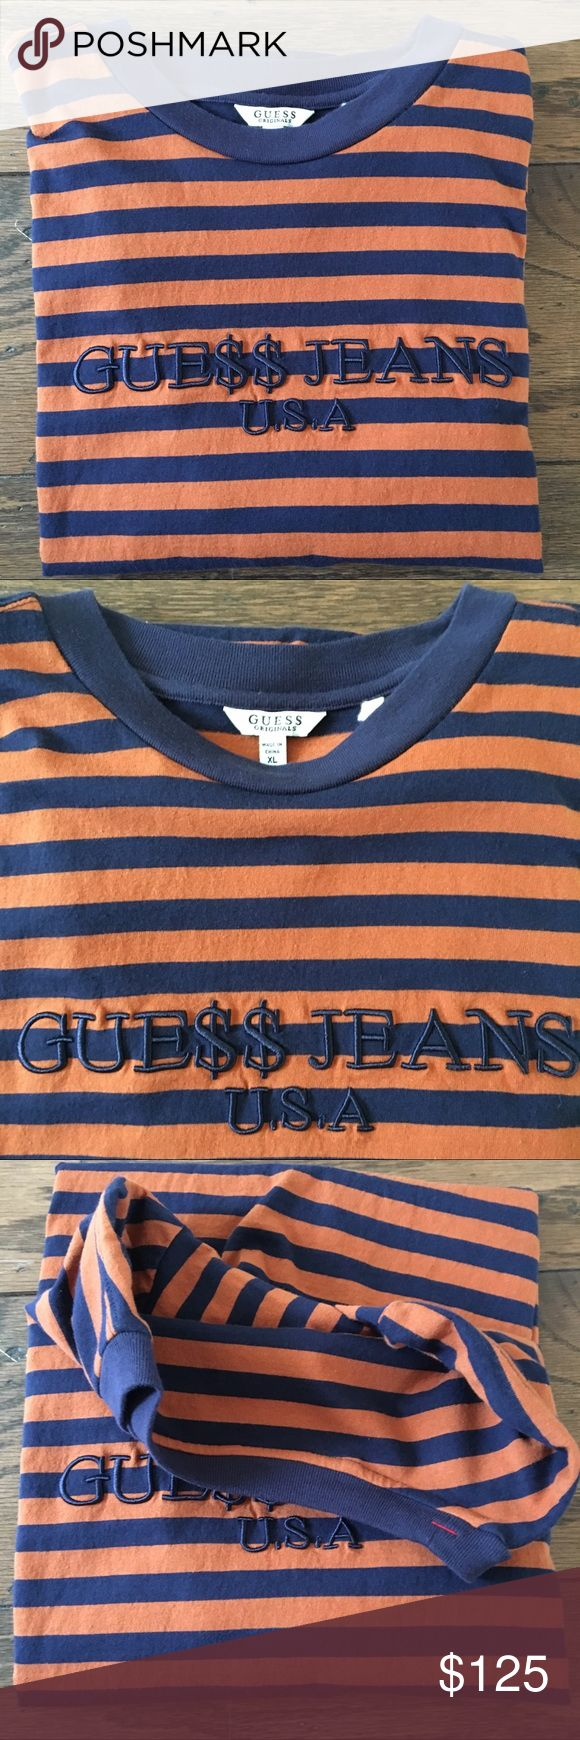 Guess x Asap Rocky Orange/Navy Tee XL Guess x Asap Rocky  Striped Tee Shirt In The Orange/Navy colorway!  Condition: 9/10. No flaws. Just the embroidery is a little worn. Look at the picture before purchasing.  Size: XL. Fits slightly oversized  Ships via USPS 1-3 day Priority Mail. Items are shipped the same or next business day. Guess Shirts Tees - Short Sleeve